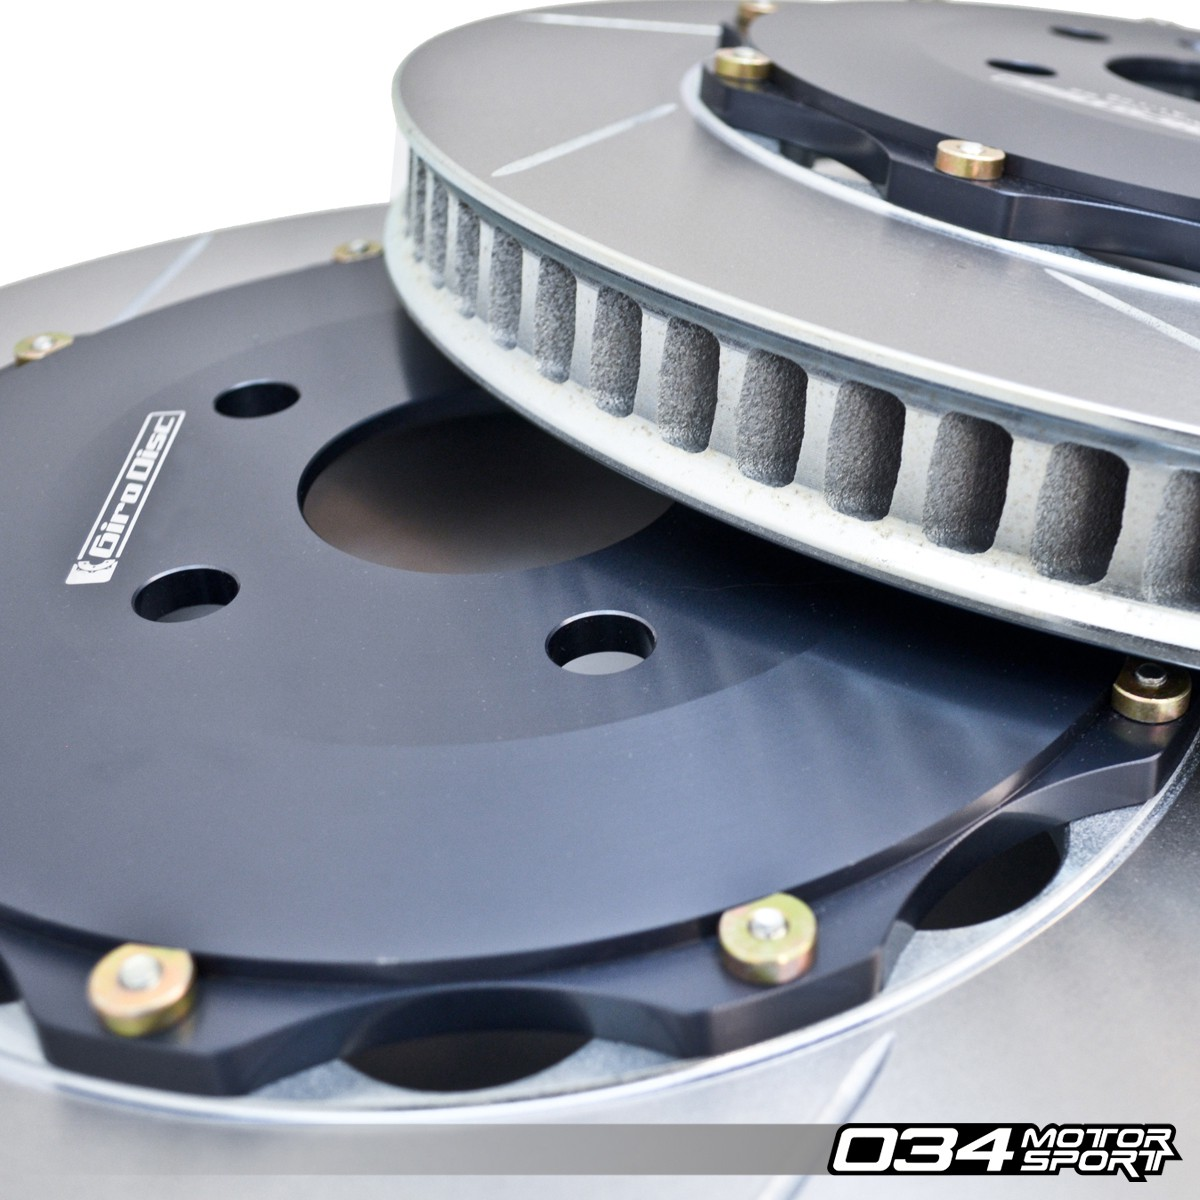 GiroDisc Rear 2-Piece Floating Rotor Pair for B7 Audi RS4 | GIR-A2-100